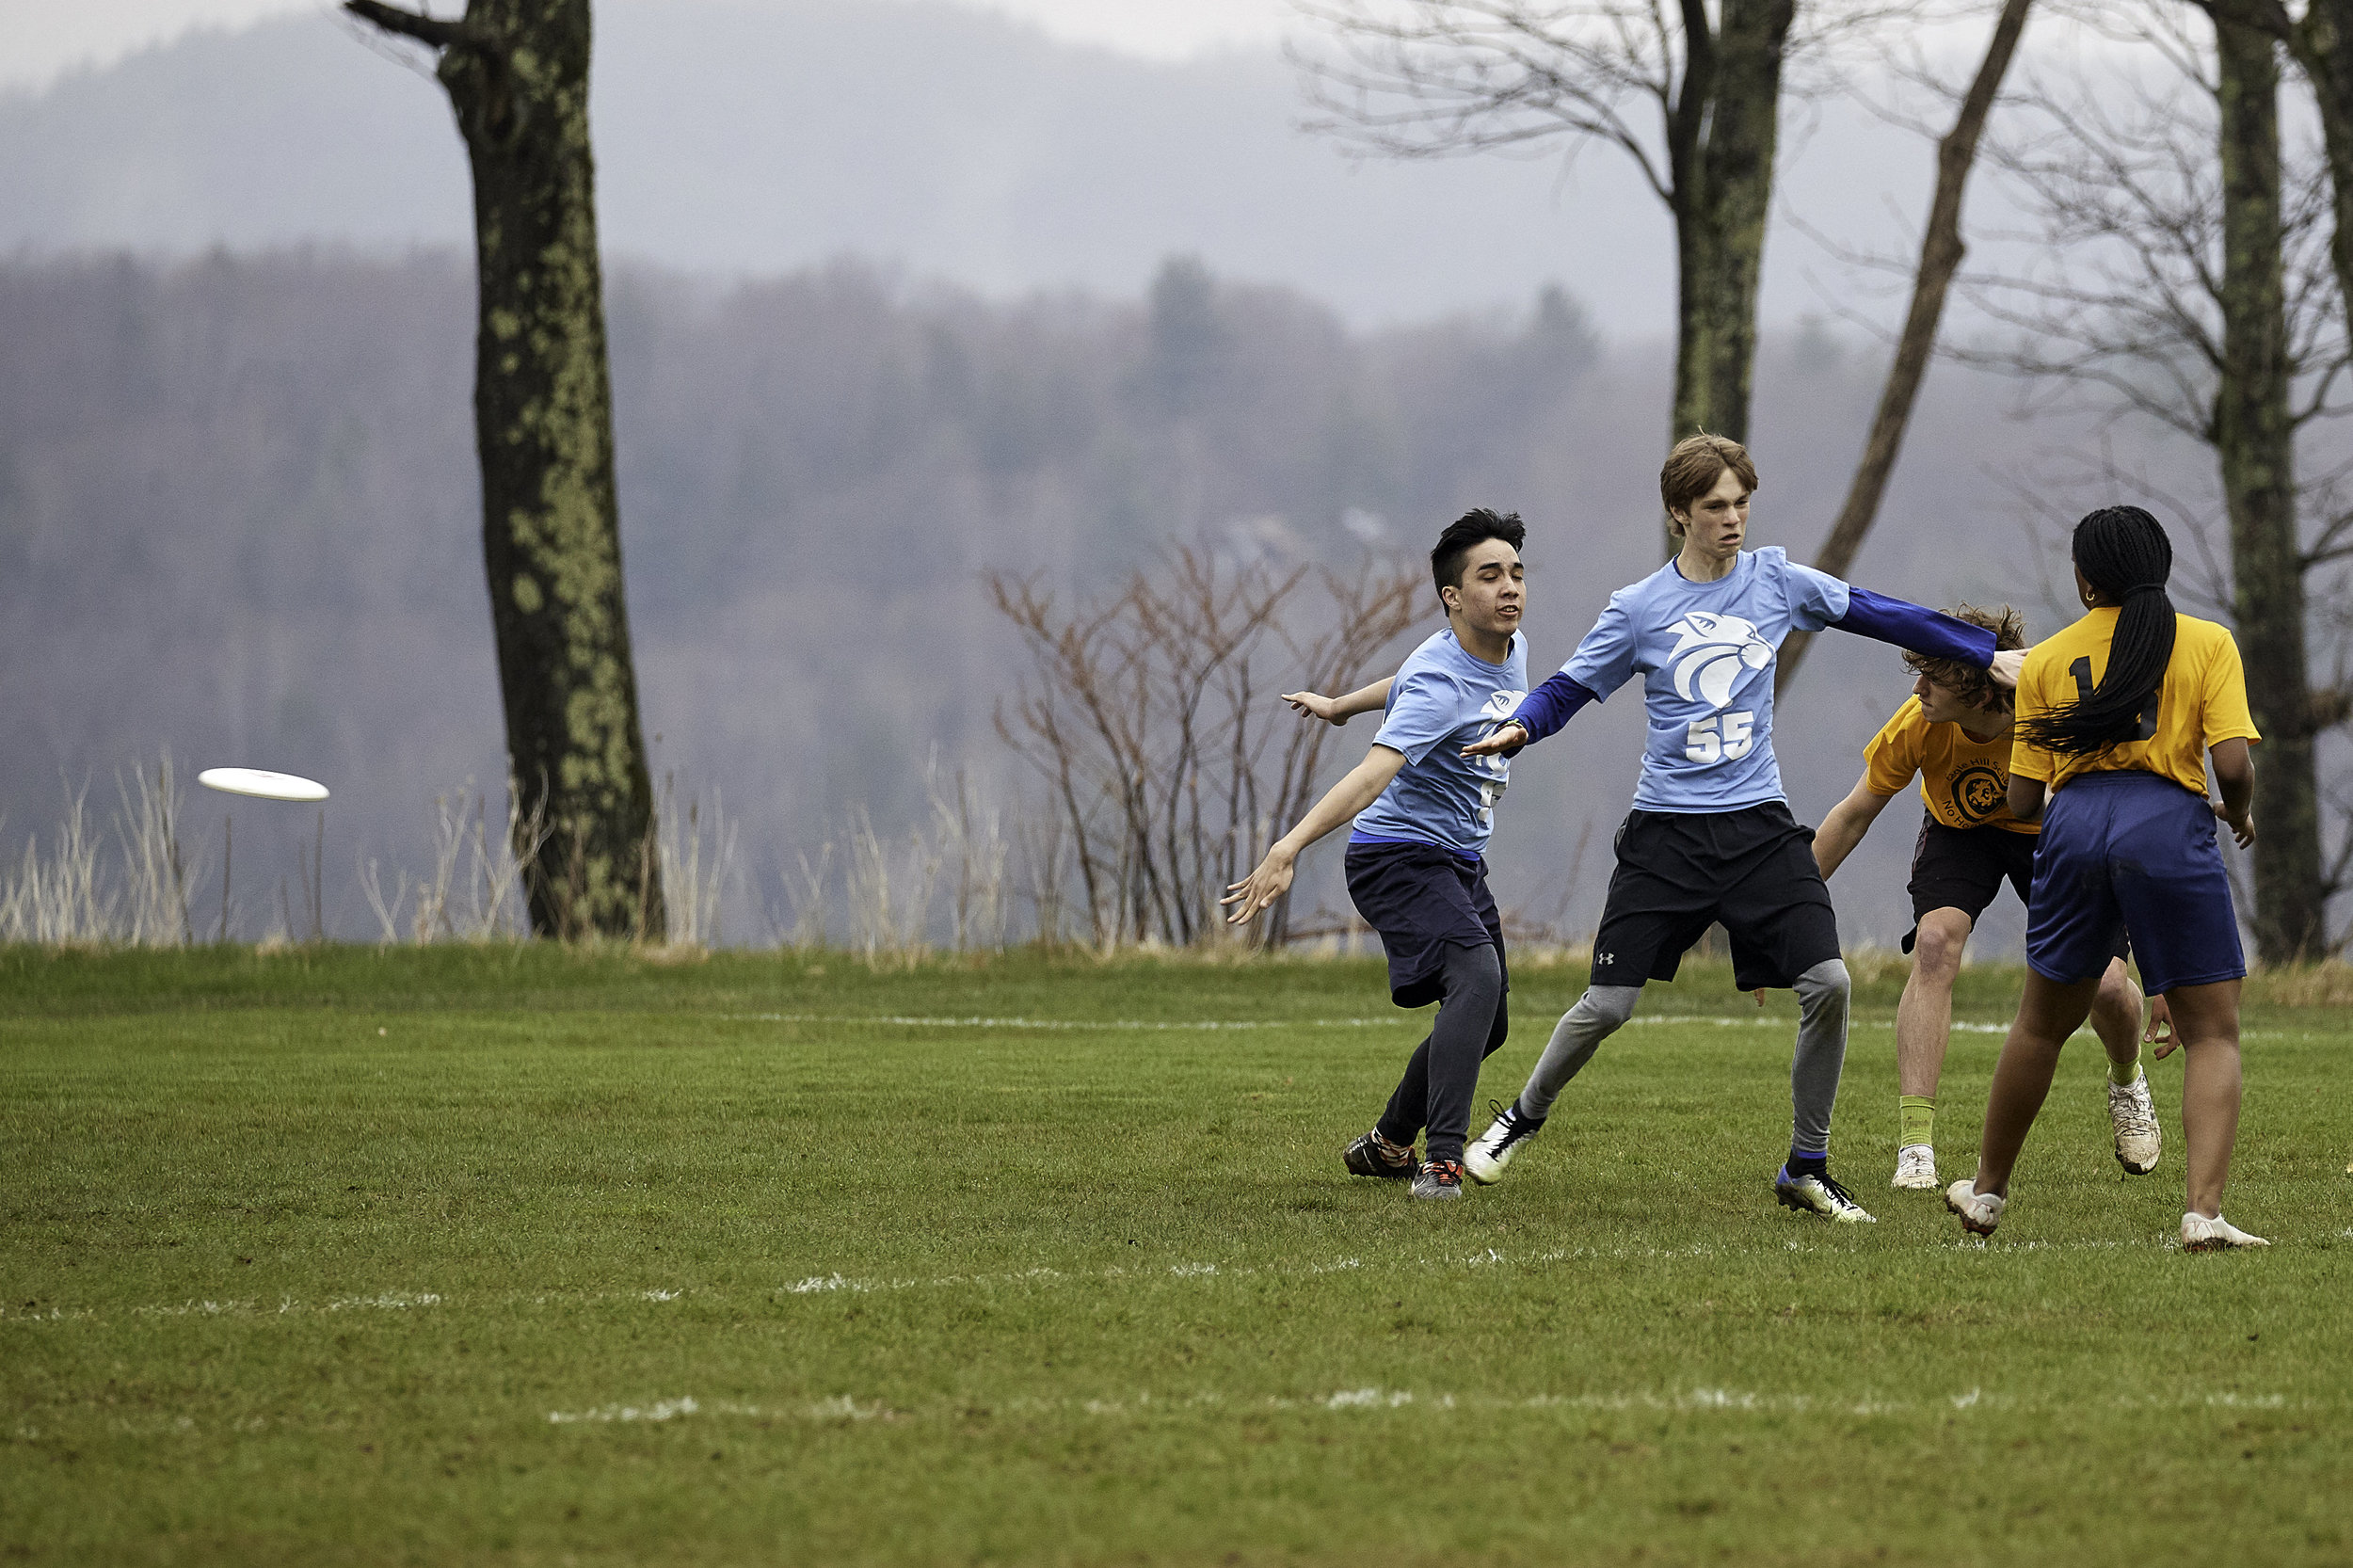 Ultimate Frisbee vs. Eagle Hill School - May 3, 2019 - 188617.jpg